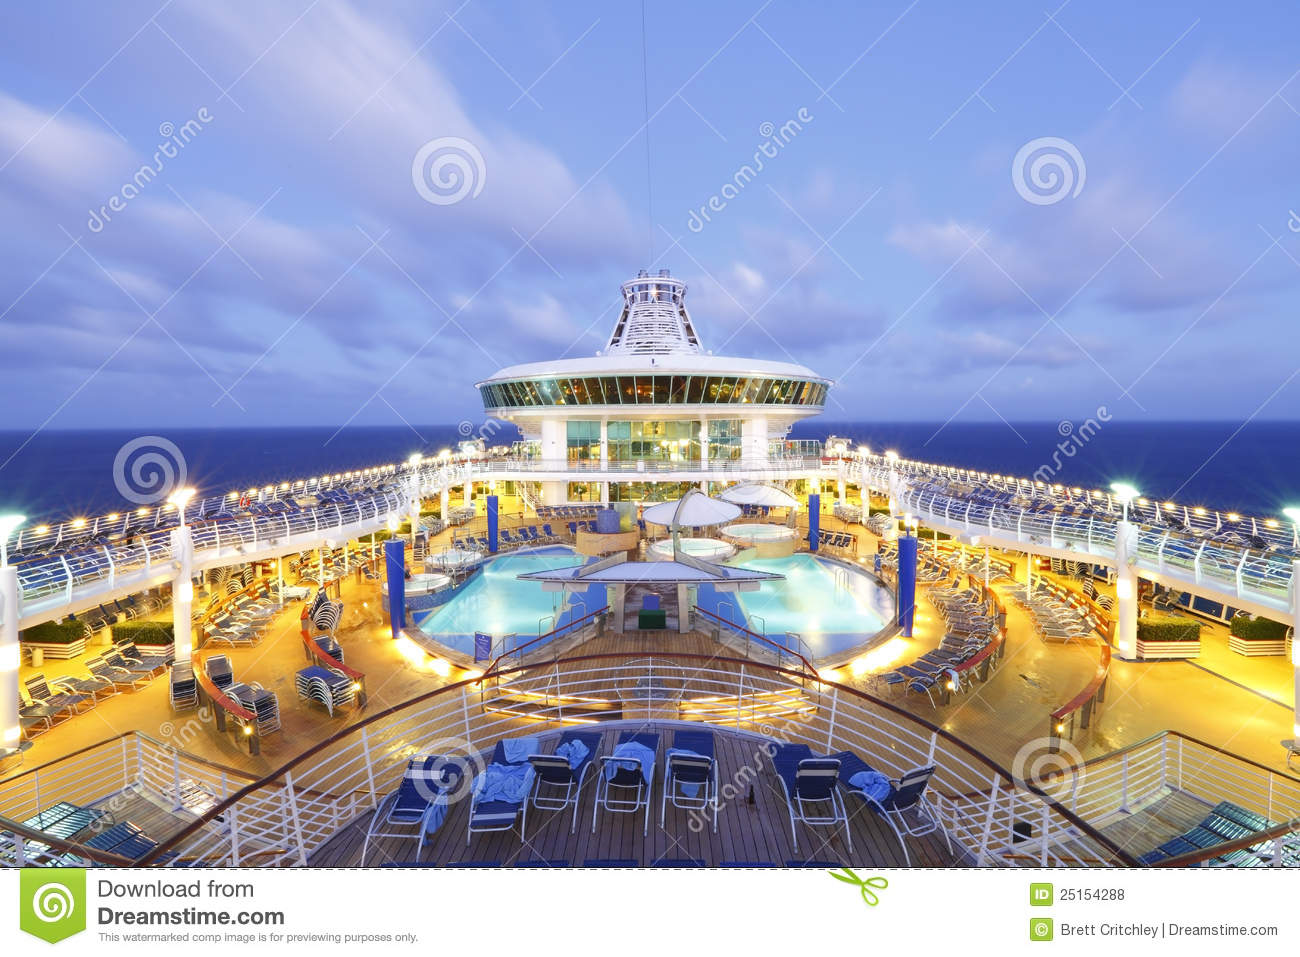 Cruise ship at dusk